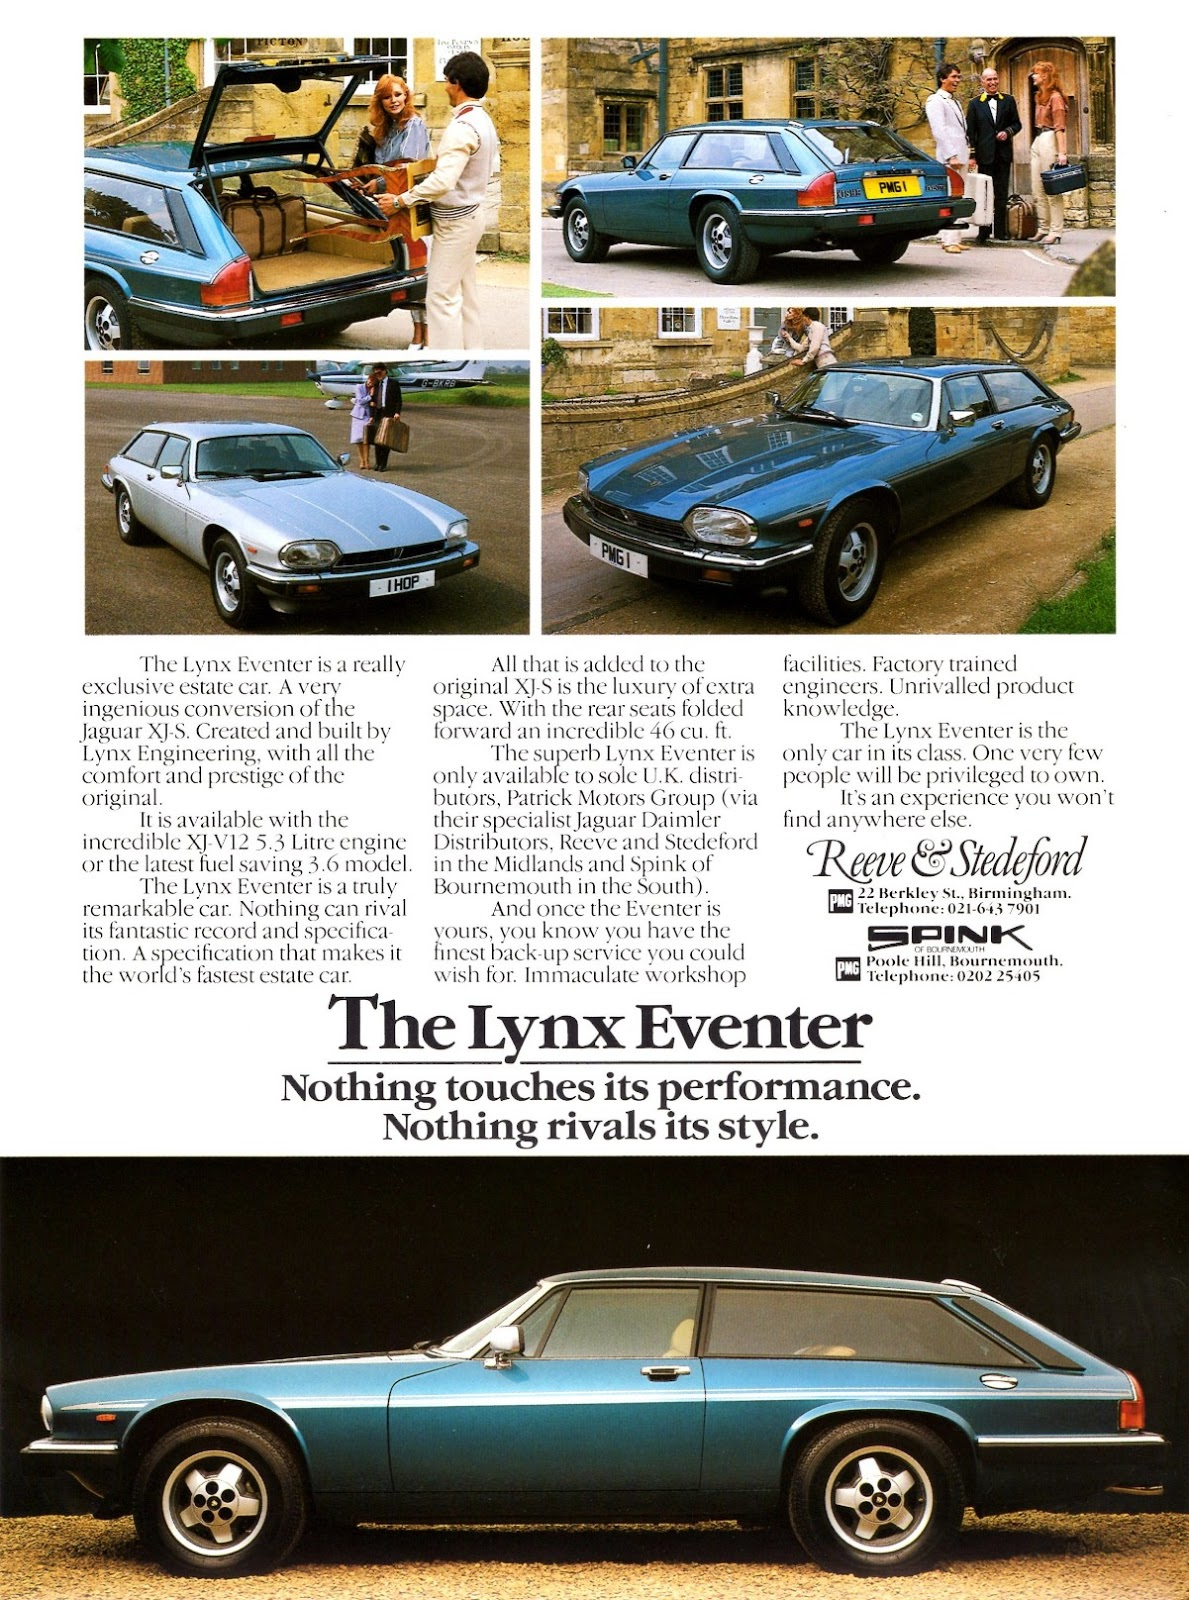 1983-Jaguar-XJ-S-Lynx-Eventer.jpg